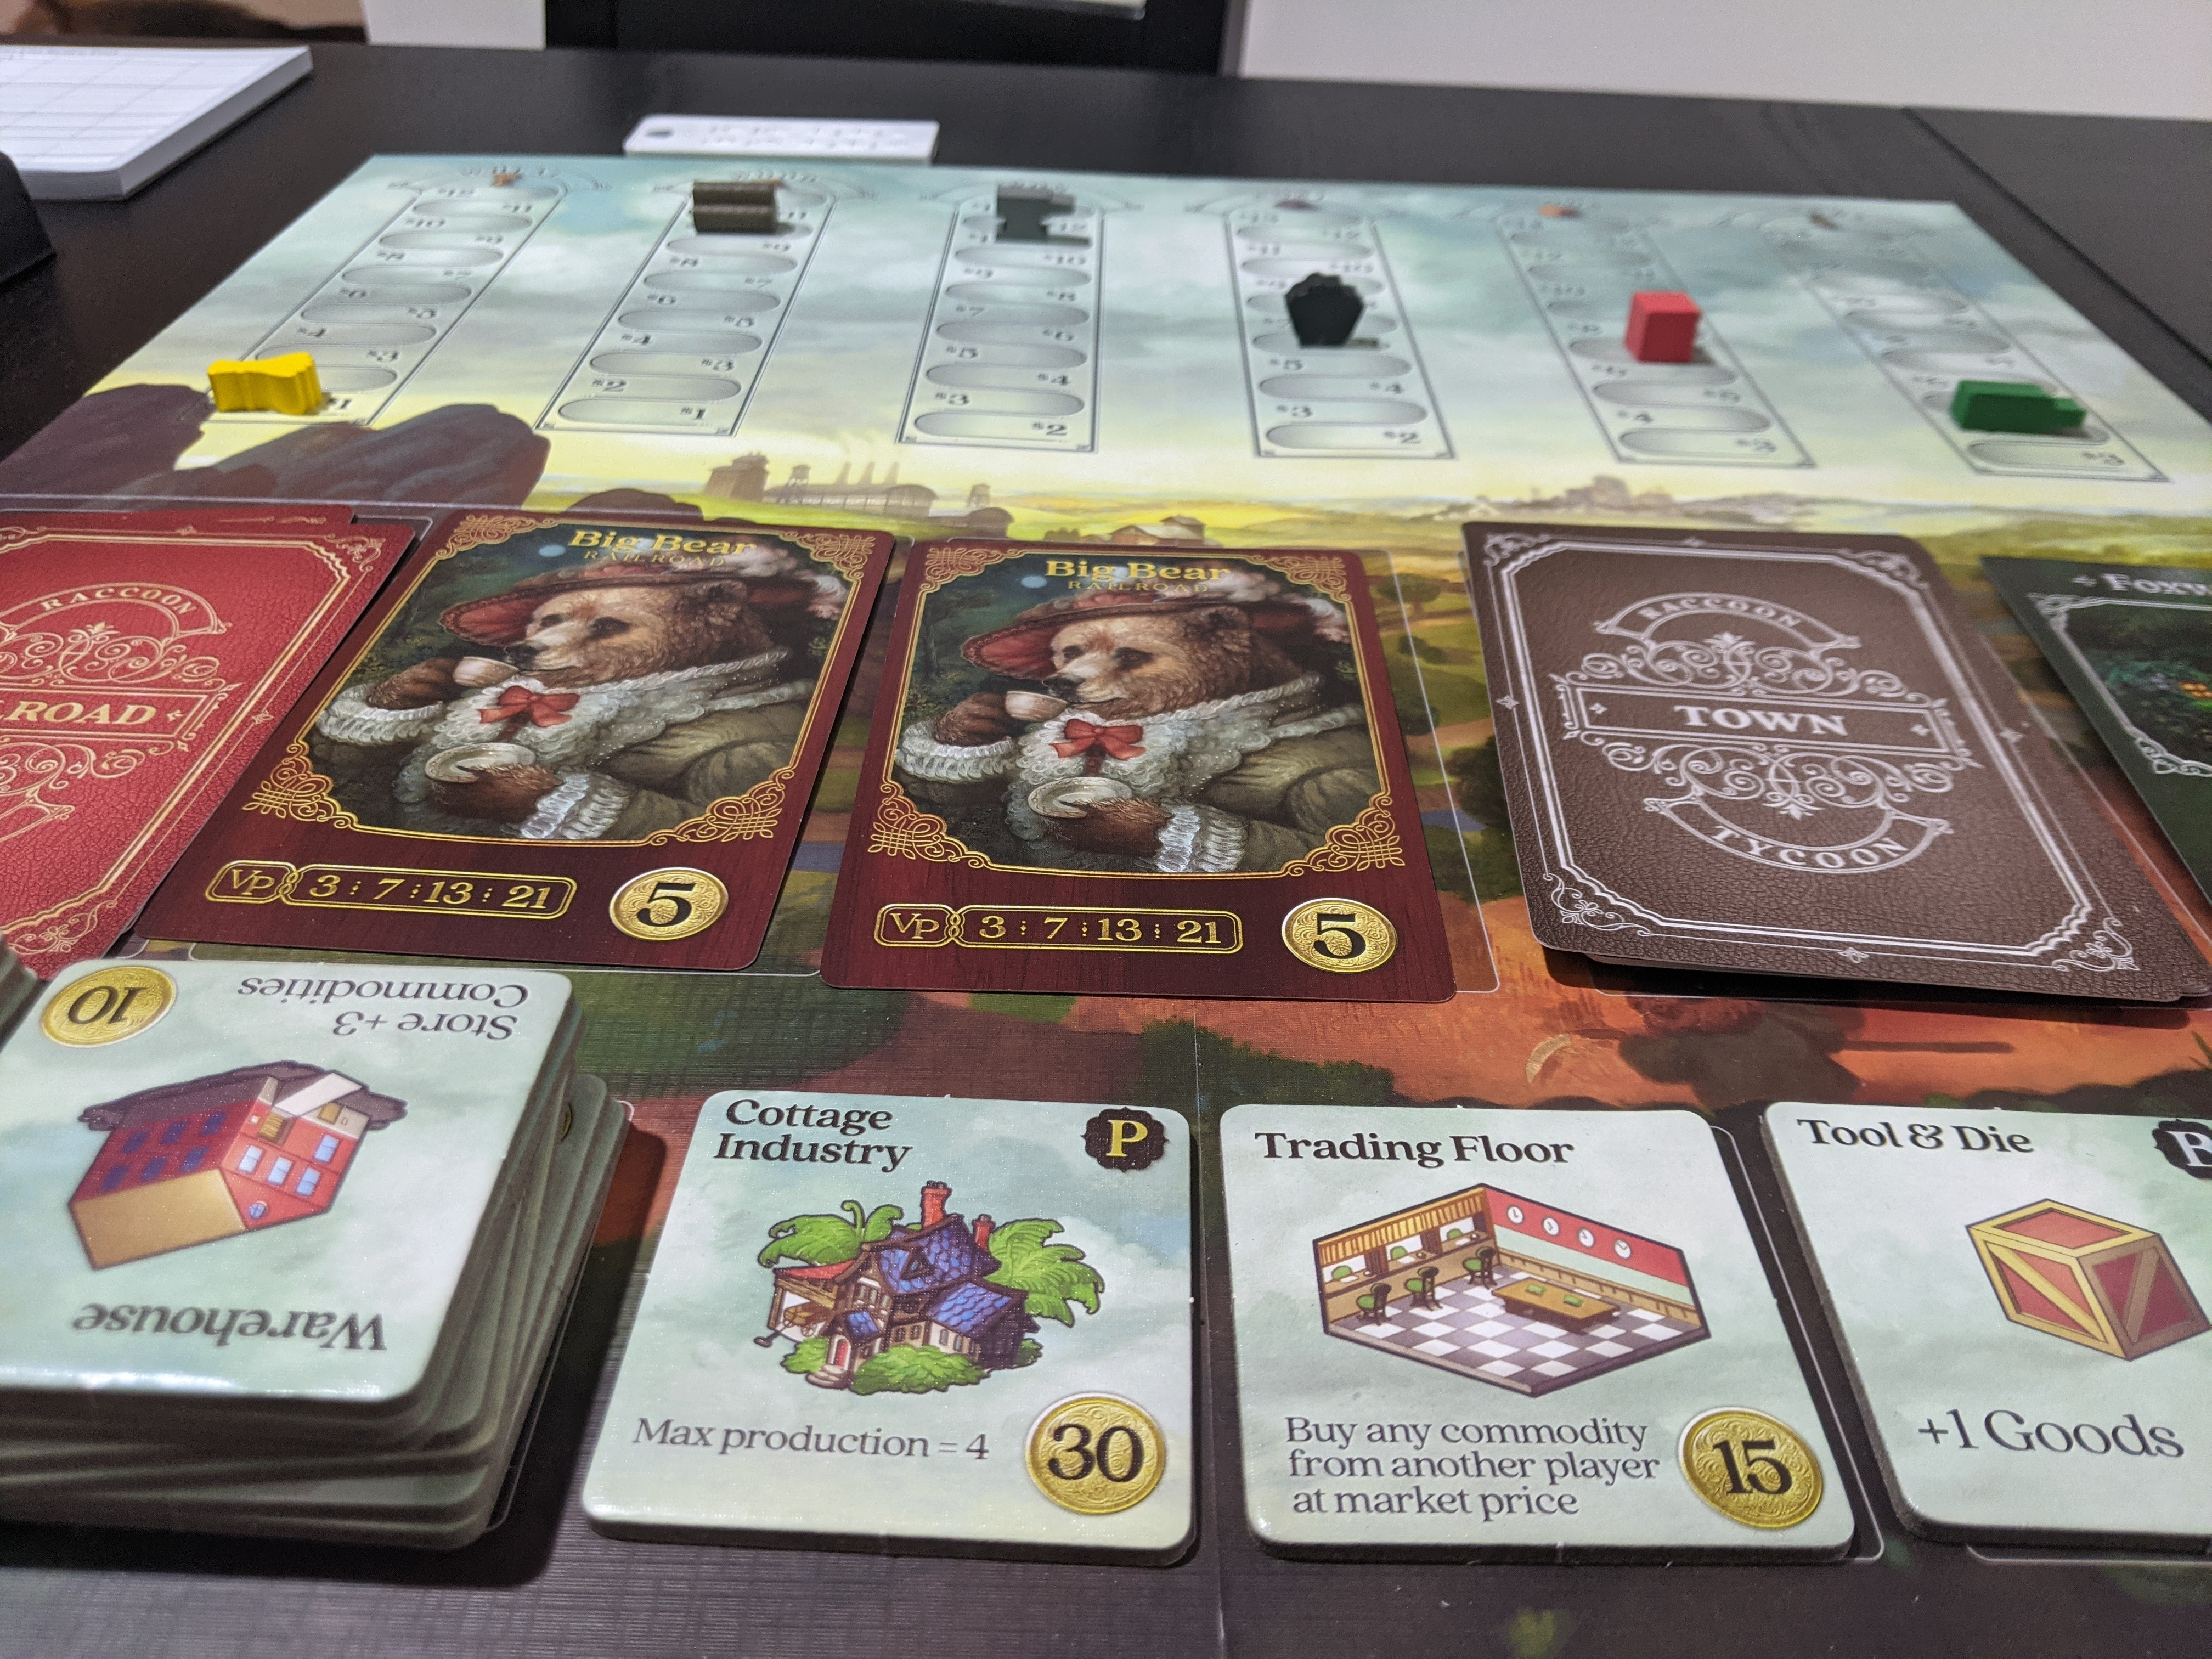 Shows the Raccoon Tycoon market board. With the buildings being sold being the Cottage Industry, Trading Floor, and Tool & Die.